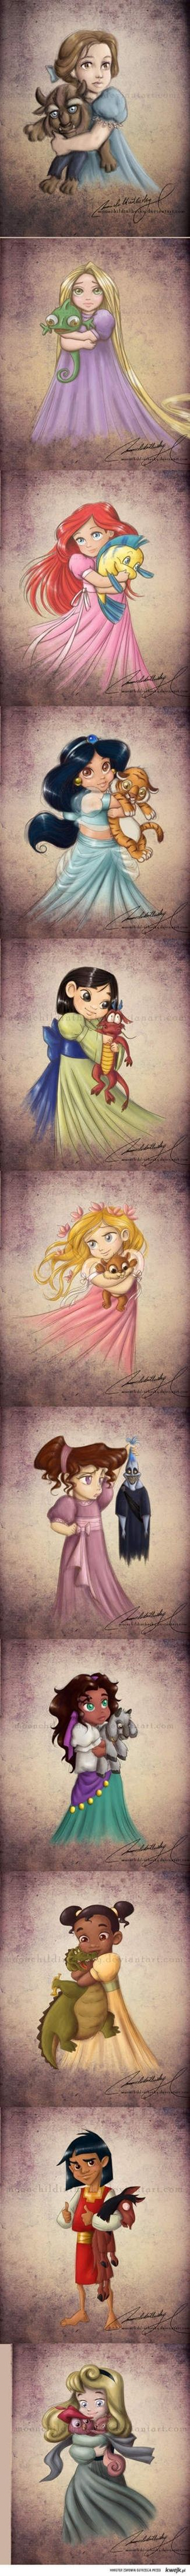 Precious! Baby Disney Princess Characters - But who's the blond with the squirrel??